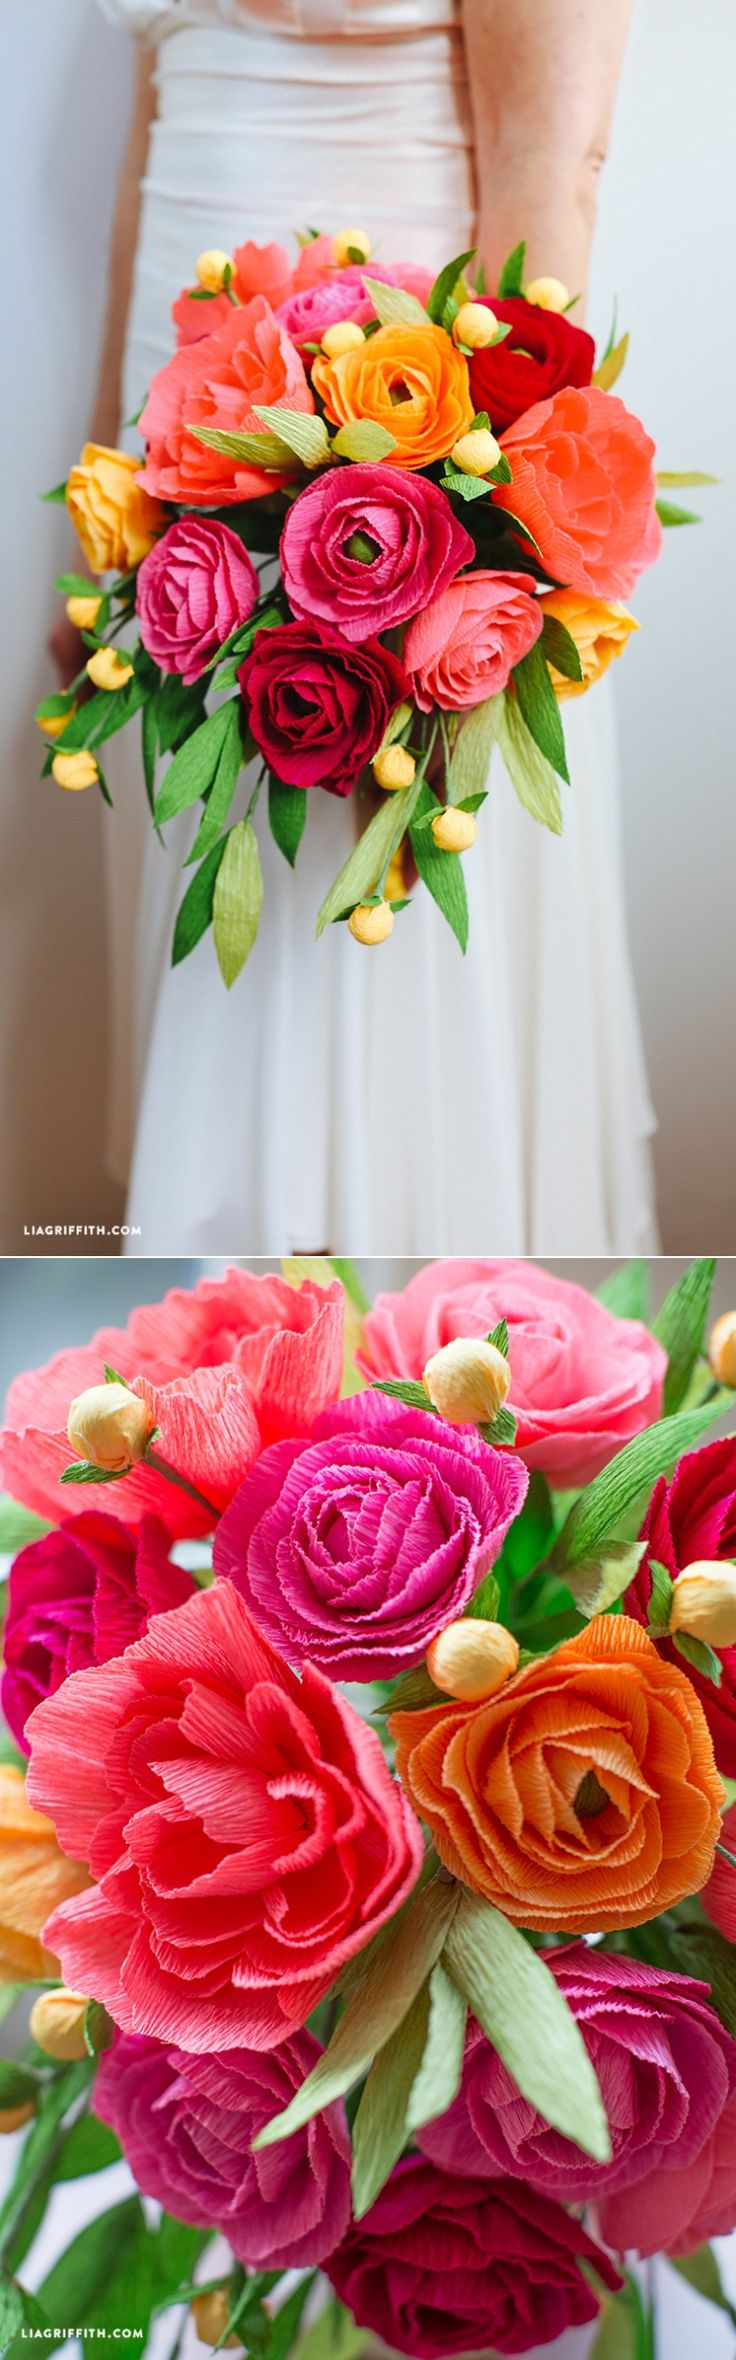 #CrepePaper #NeonWeddingBouquet #PaperFlowers #DIYWedding www.LiaGriffith.com